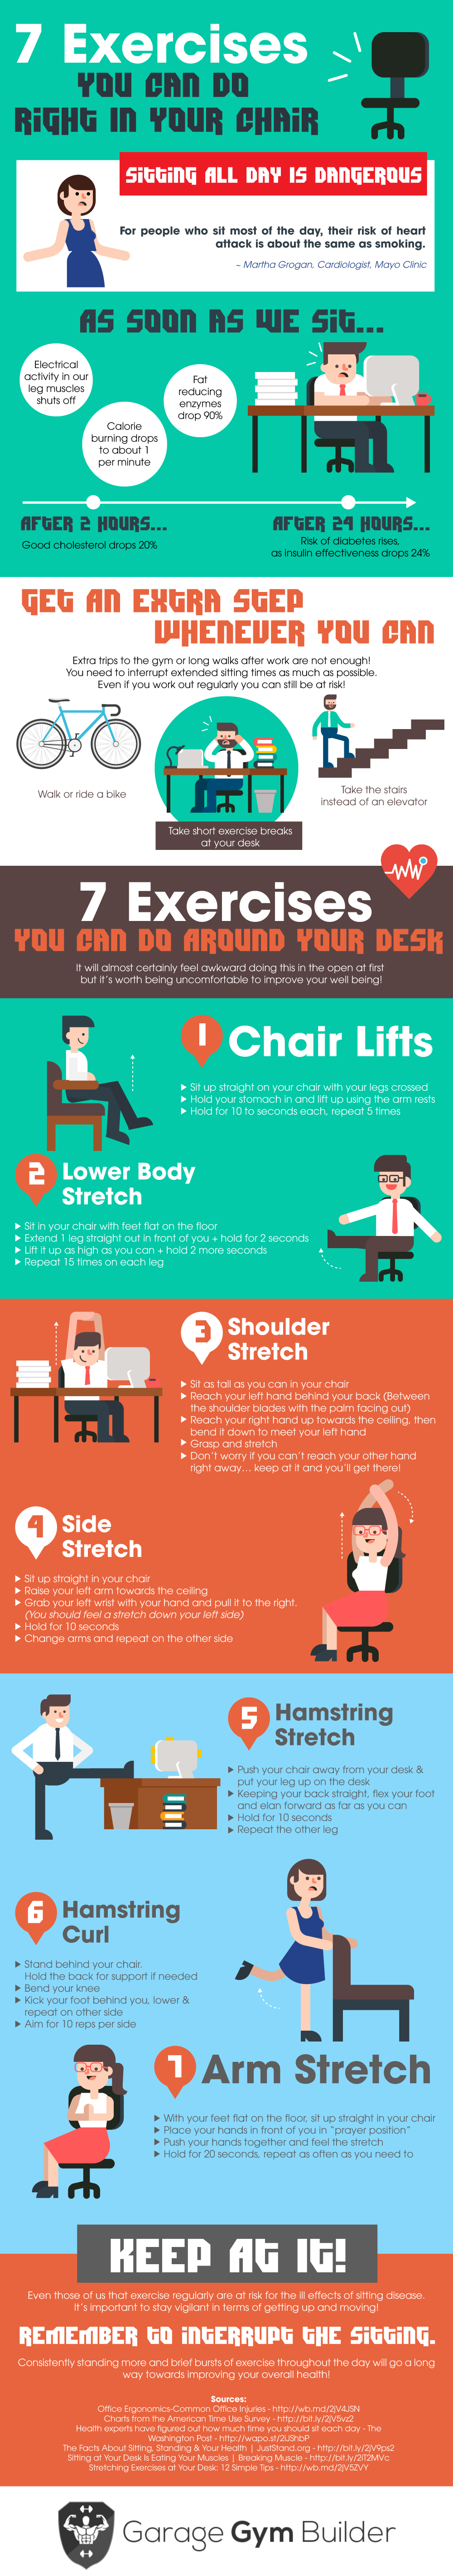 7 exercises you can do in your chair